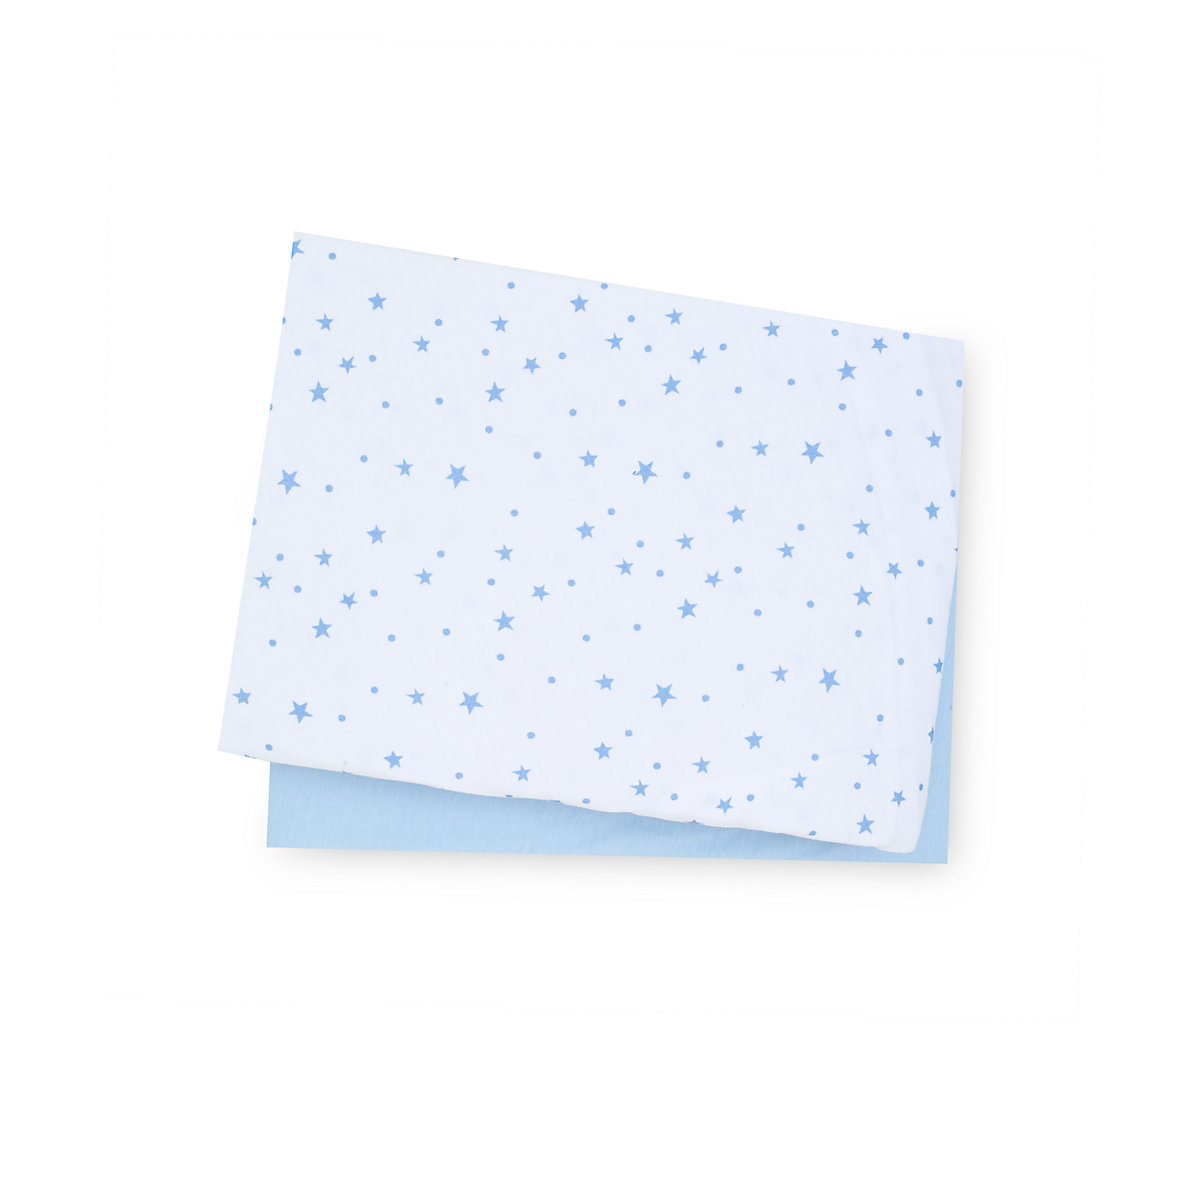 mothercare blue jersey cotton cot bed sheets - 2 pack